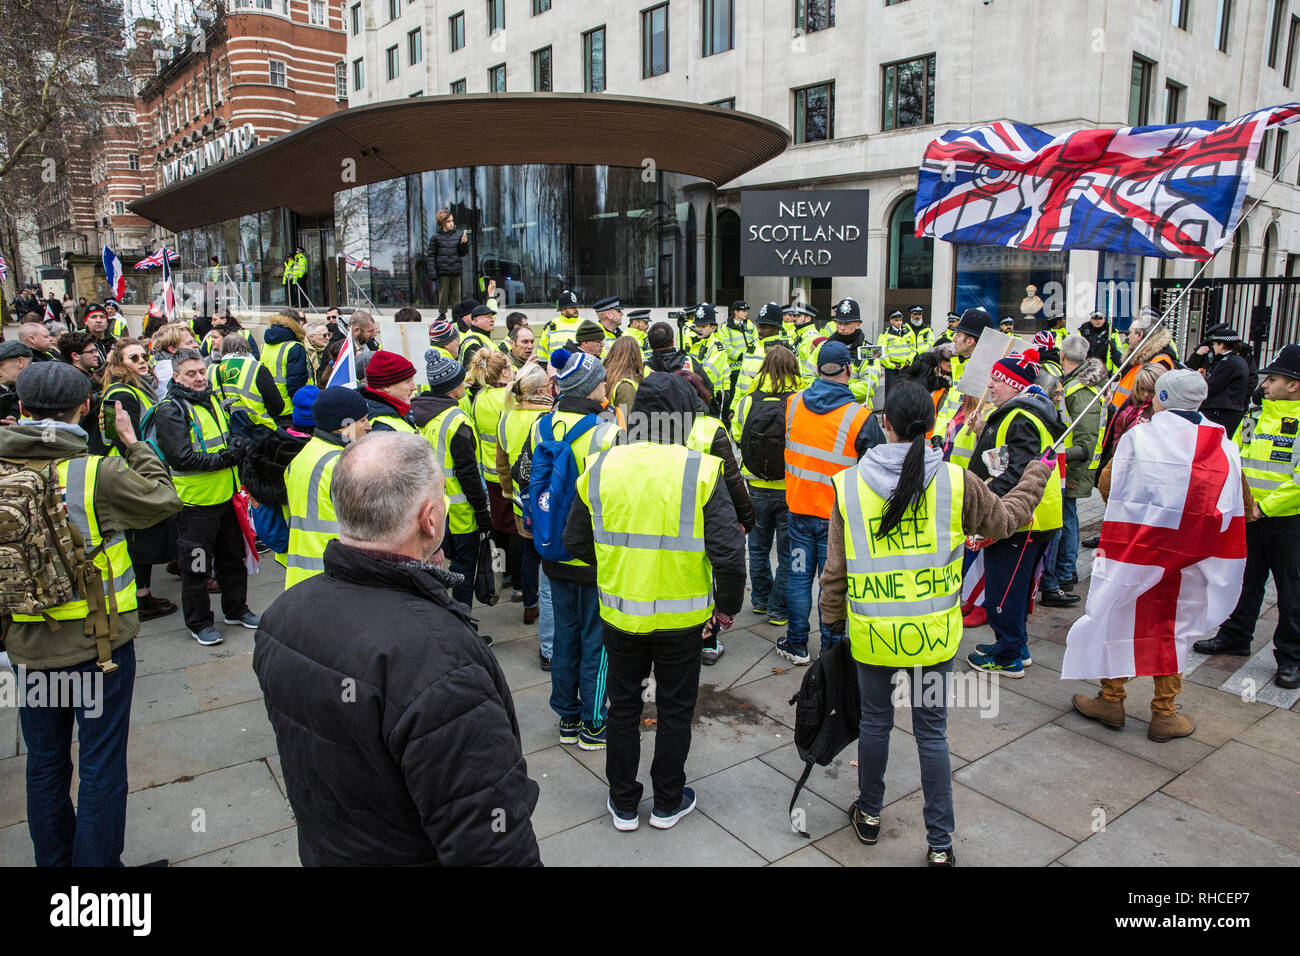 London, UK. 2nd February, 2019. Supporters of Yellow Vests UK protest outside New Scotland Yard to call for 'British people to be put first', for a 'full Brexit' and for 'an end to government, court and banking corruption'. Credit: Mark Kerrison/Alamy Live News - Stock Image